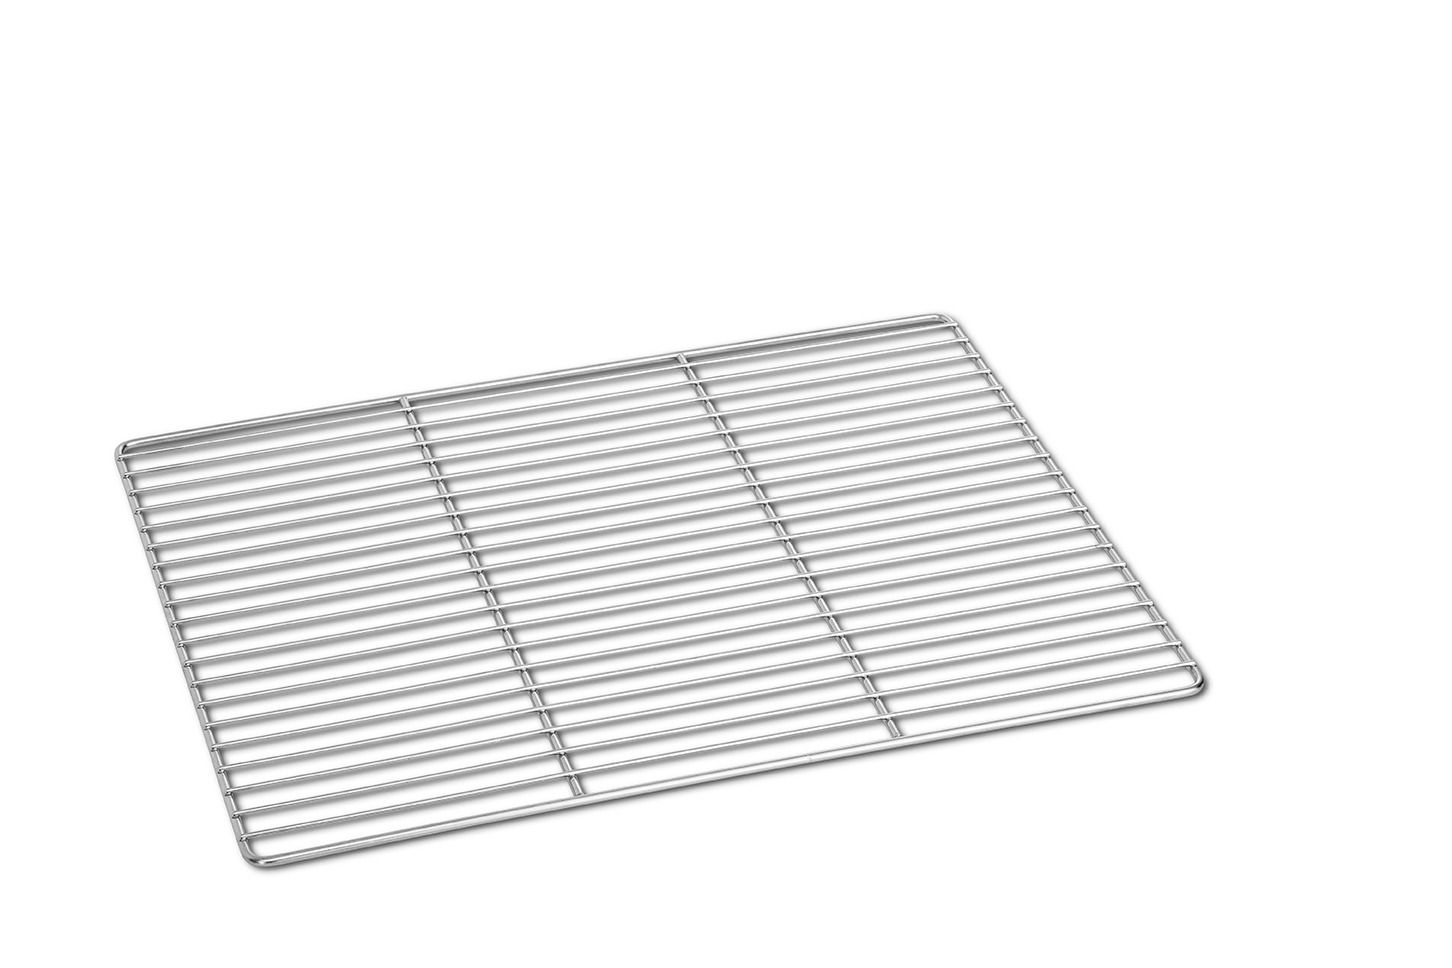 Stainless Steel Rack 2/1 GN